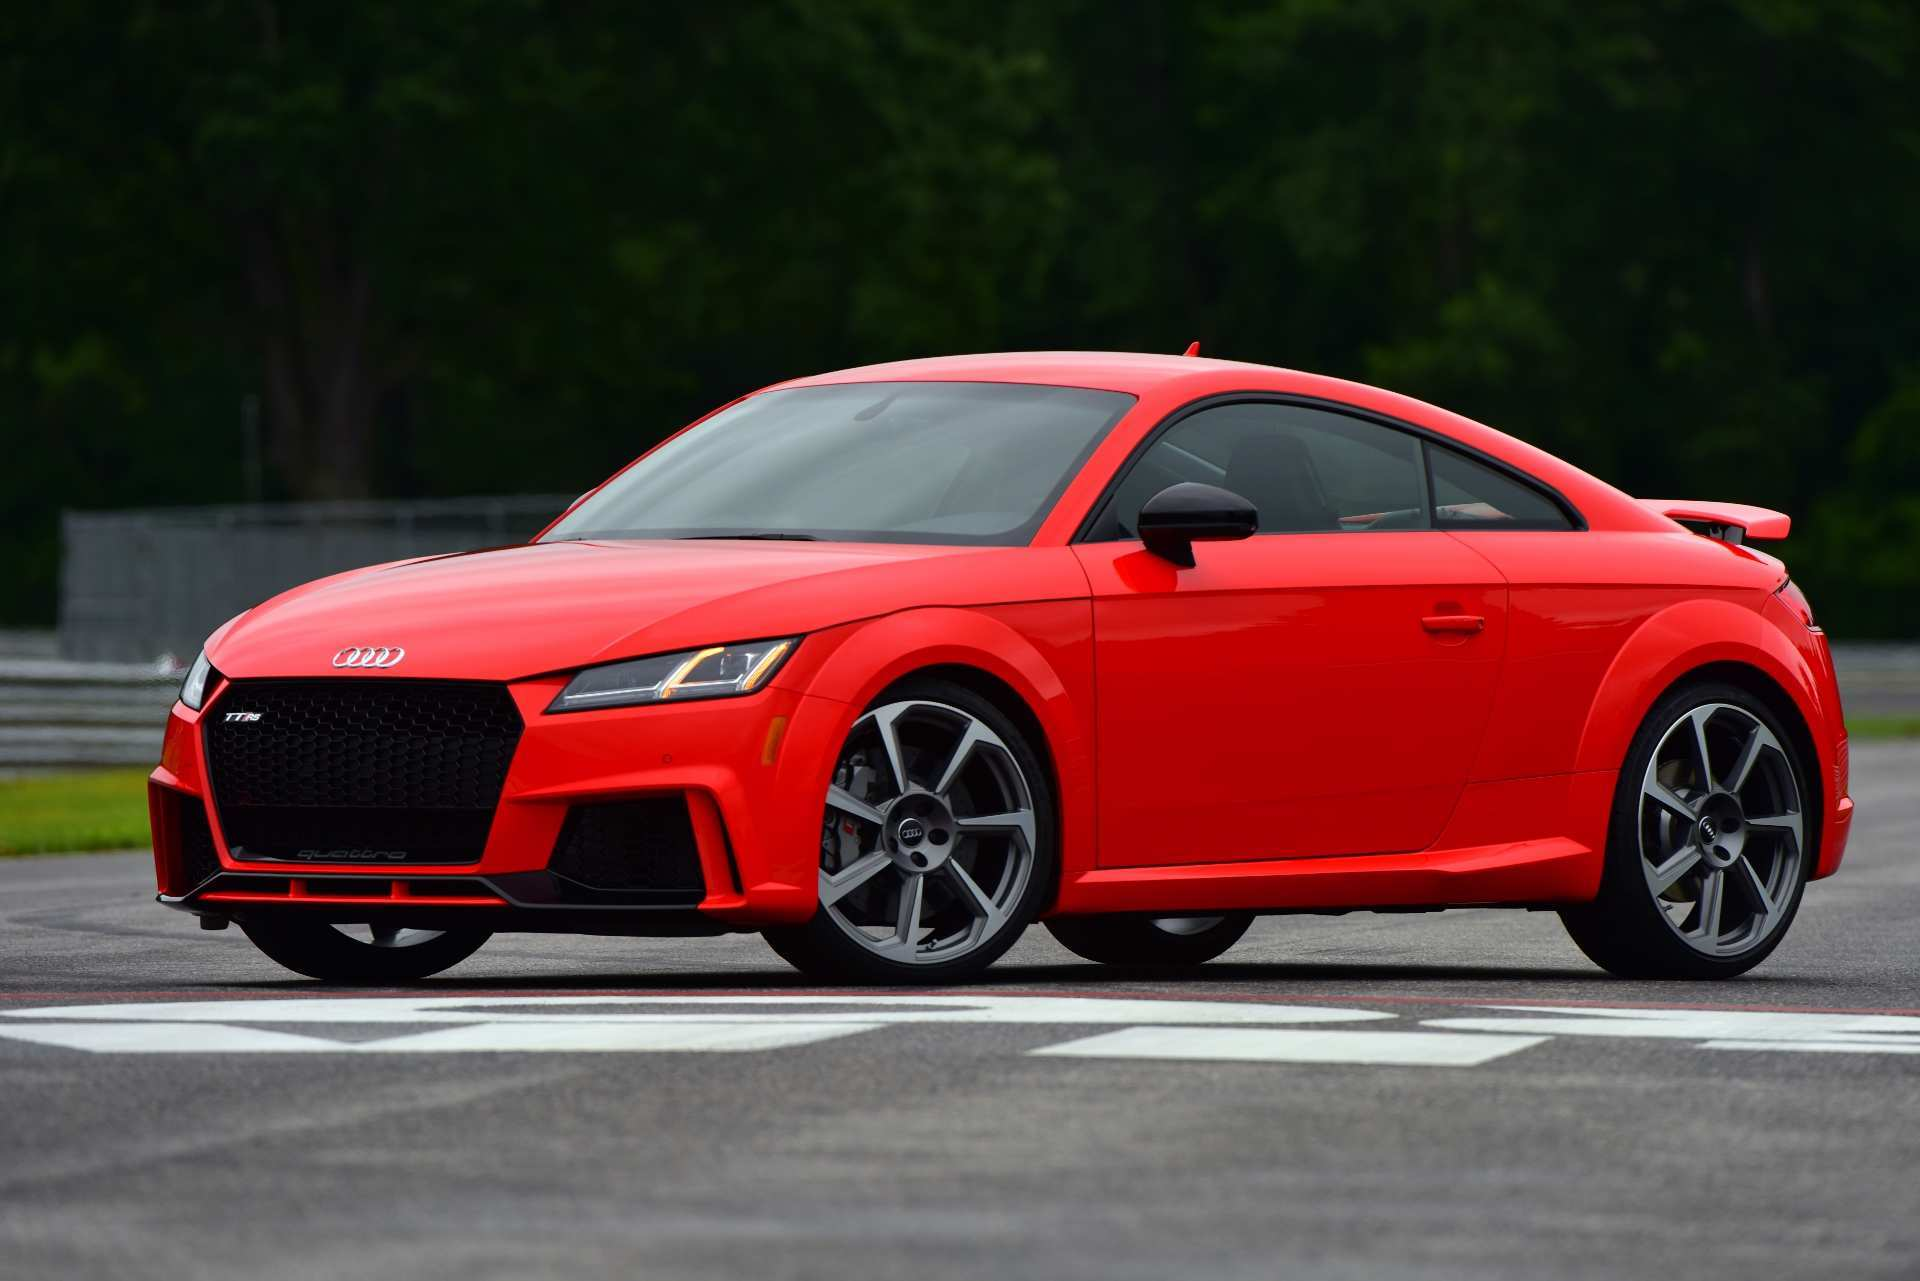 70 Gallery of 2019 Audi Tt Rs Specs for 2019 Audi Tt Rs